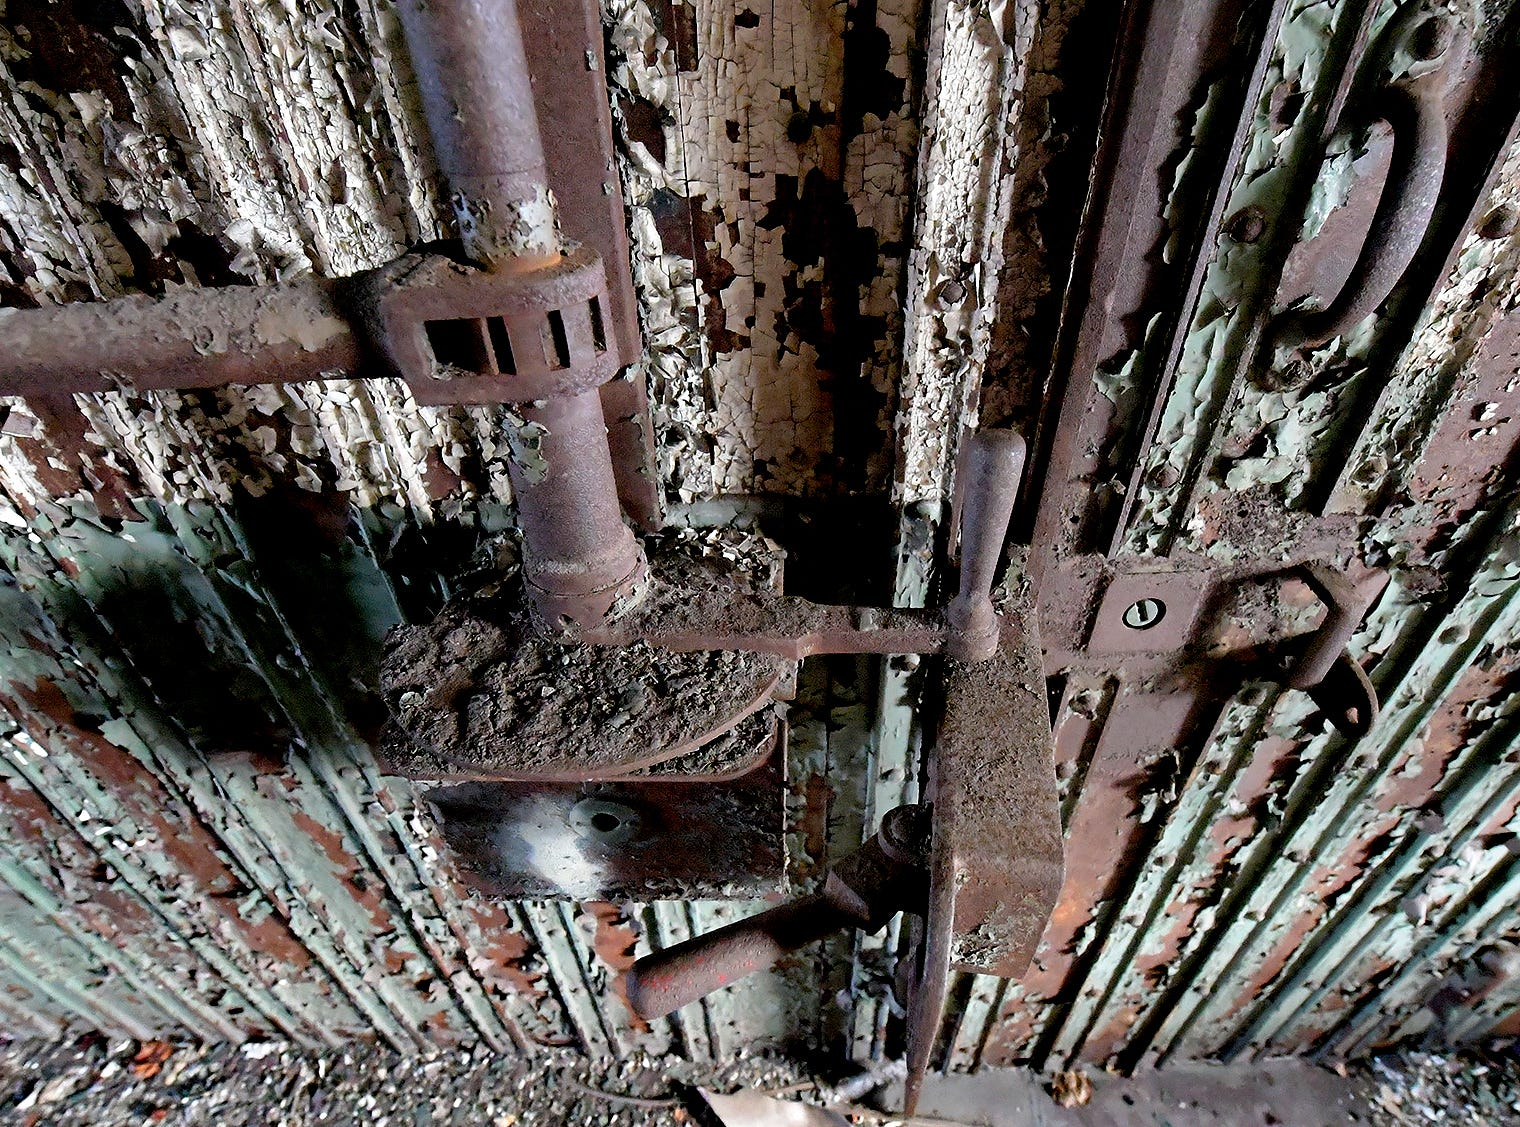 Rusted mechanics in the former York County Prison on Chestnut Street in York City Wednesday, Nov. 28, 2018. United Fiber and Data has purchased the building and plans to incorporate the structure into a data center to accompany a 400-mile fiber-optic network it's building between New York and Virginia. Bill Kalina photo